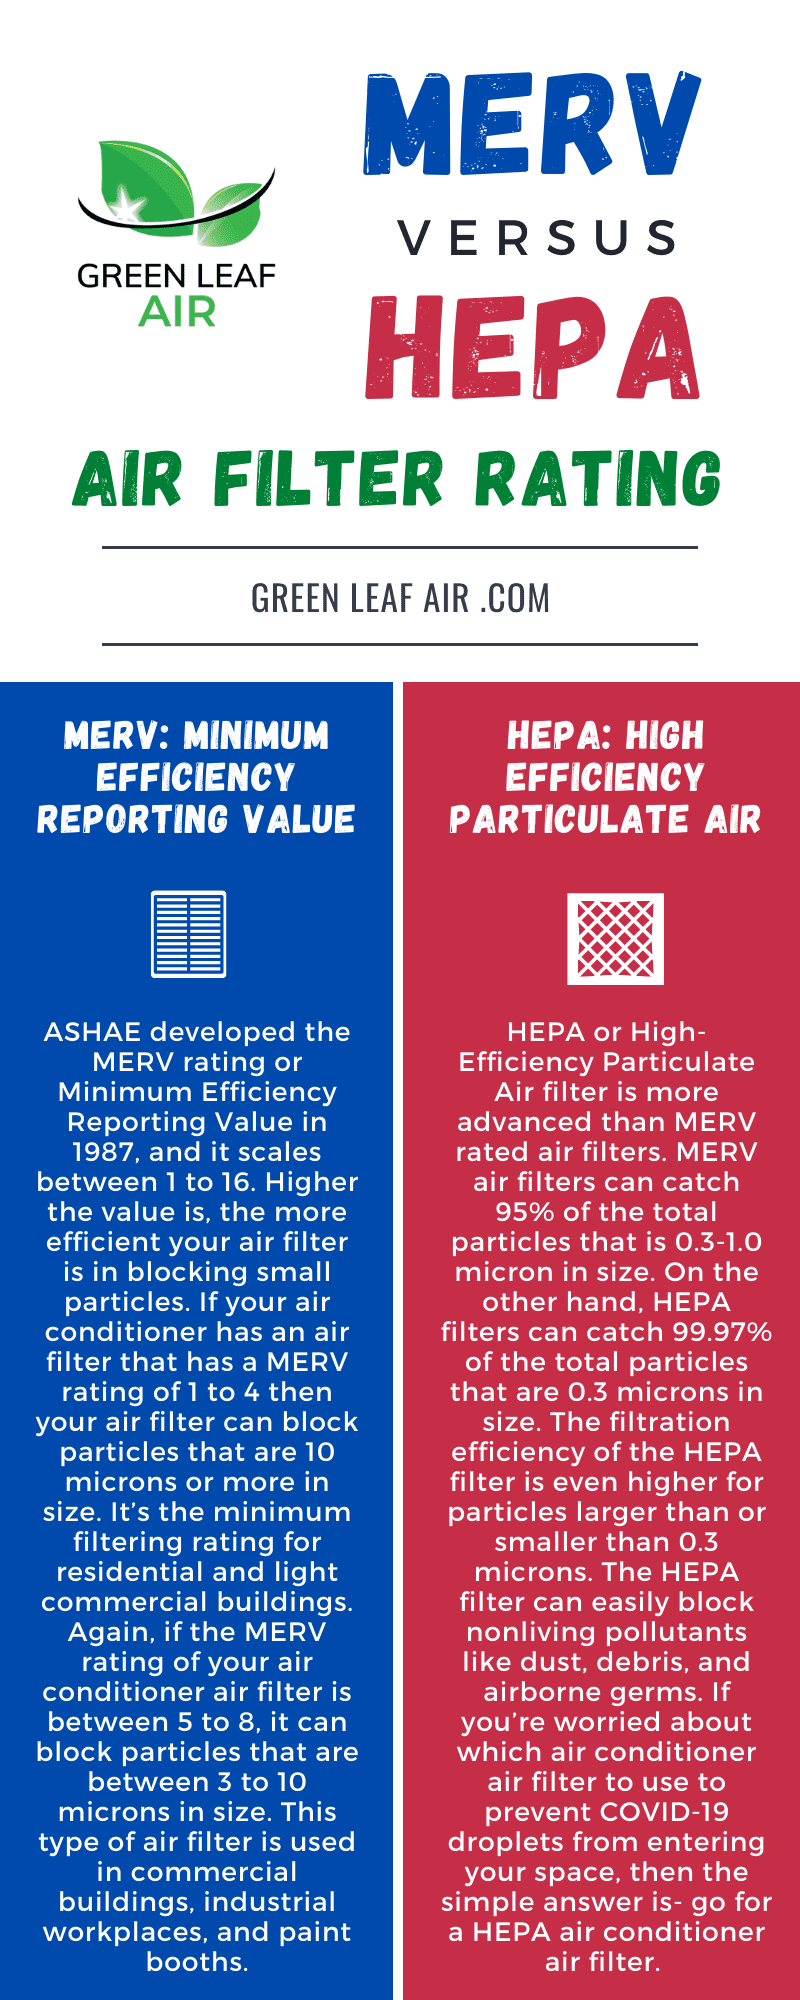 MERV & HEPA Rating For Air Filters